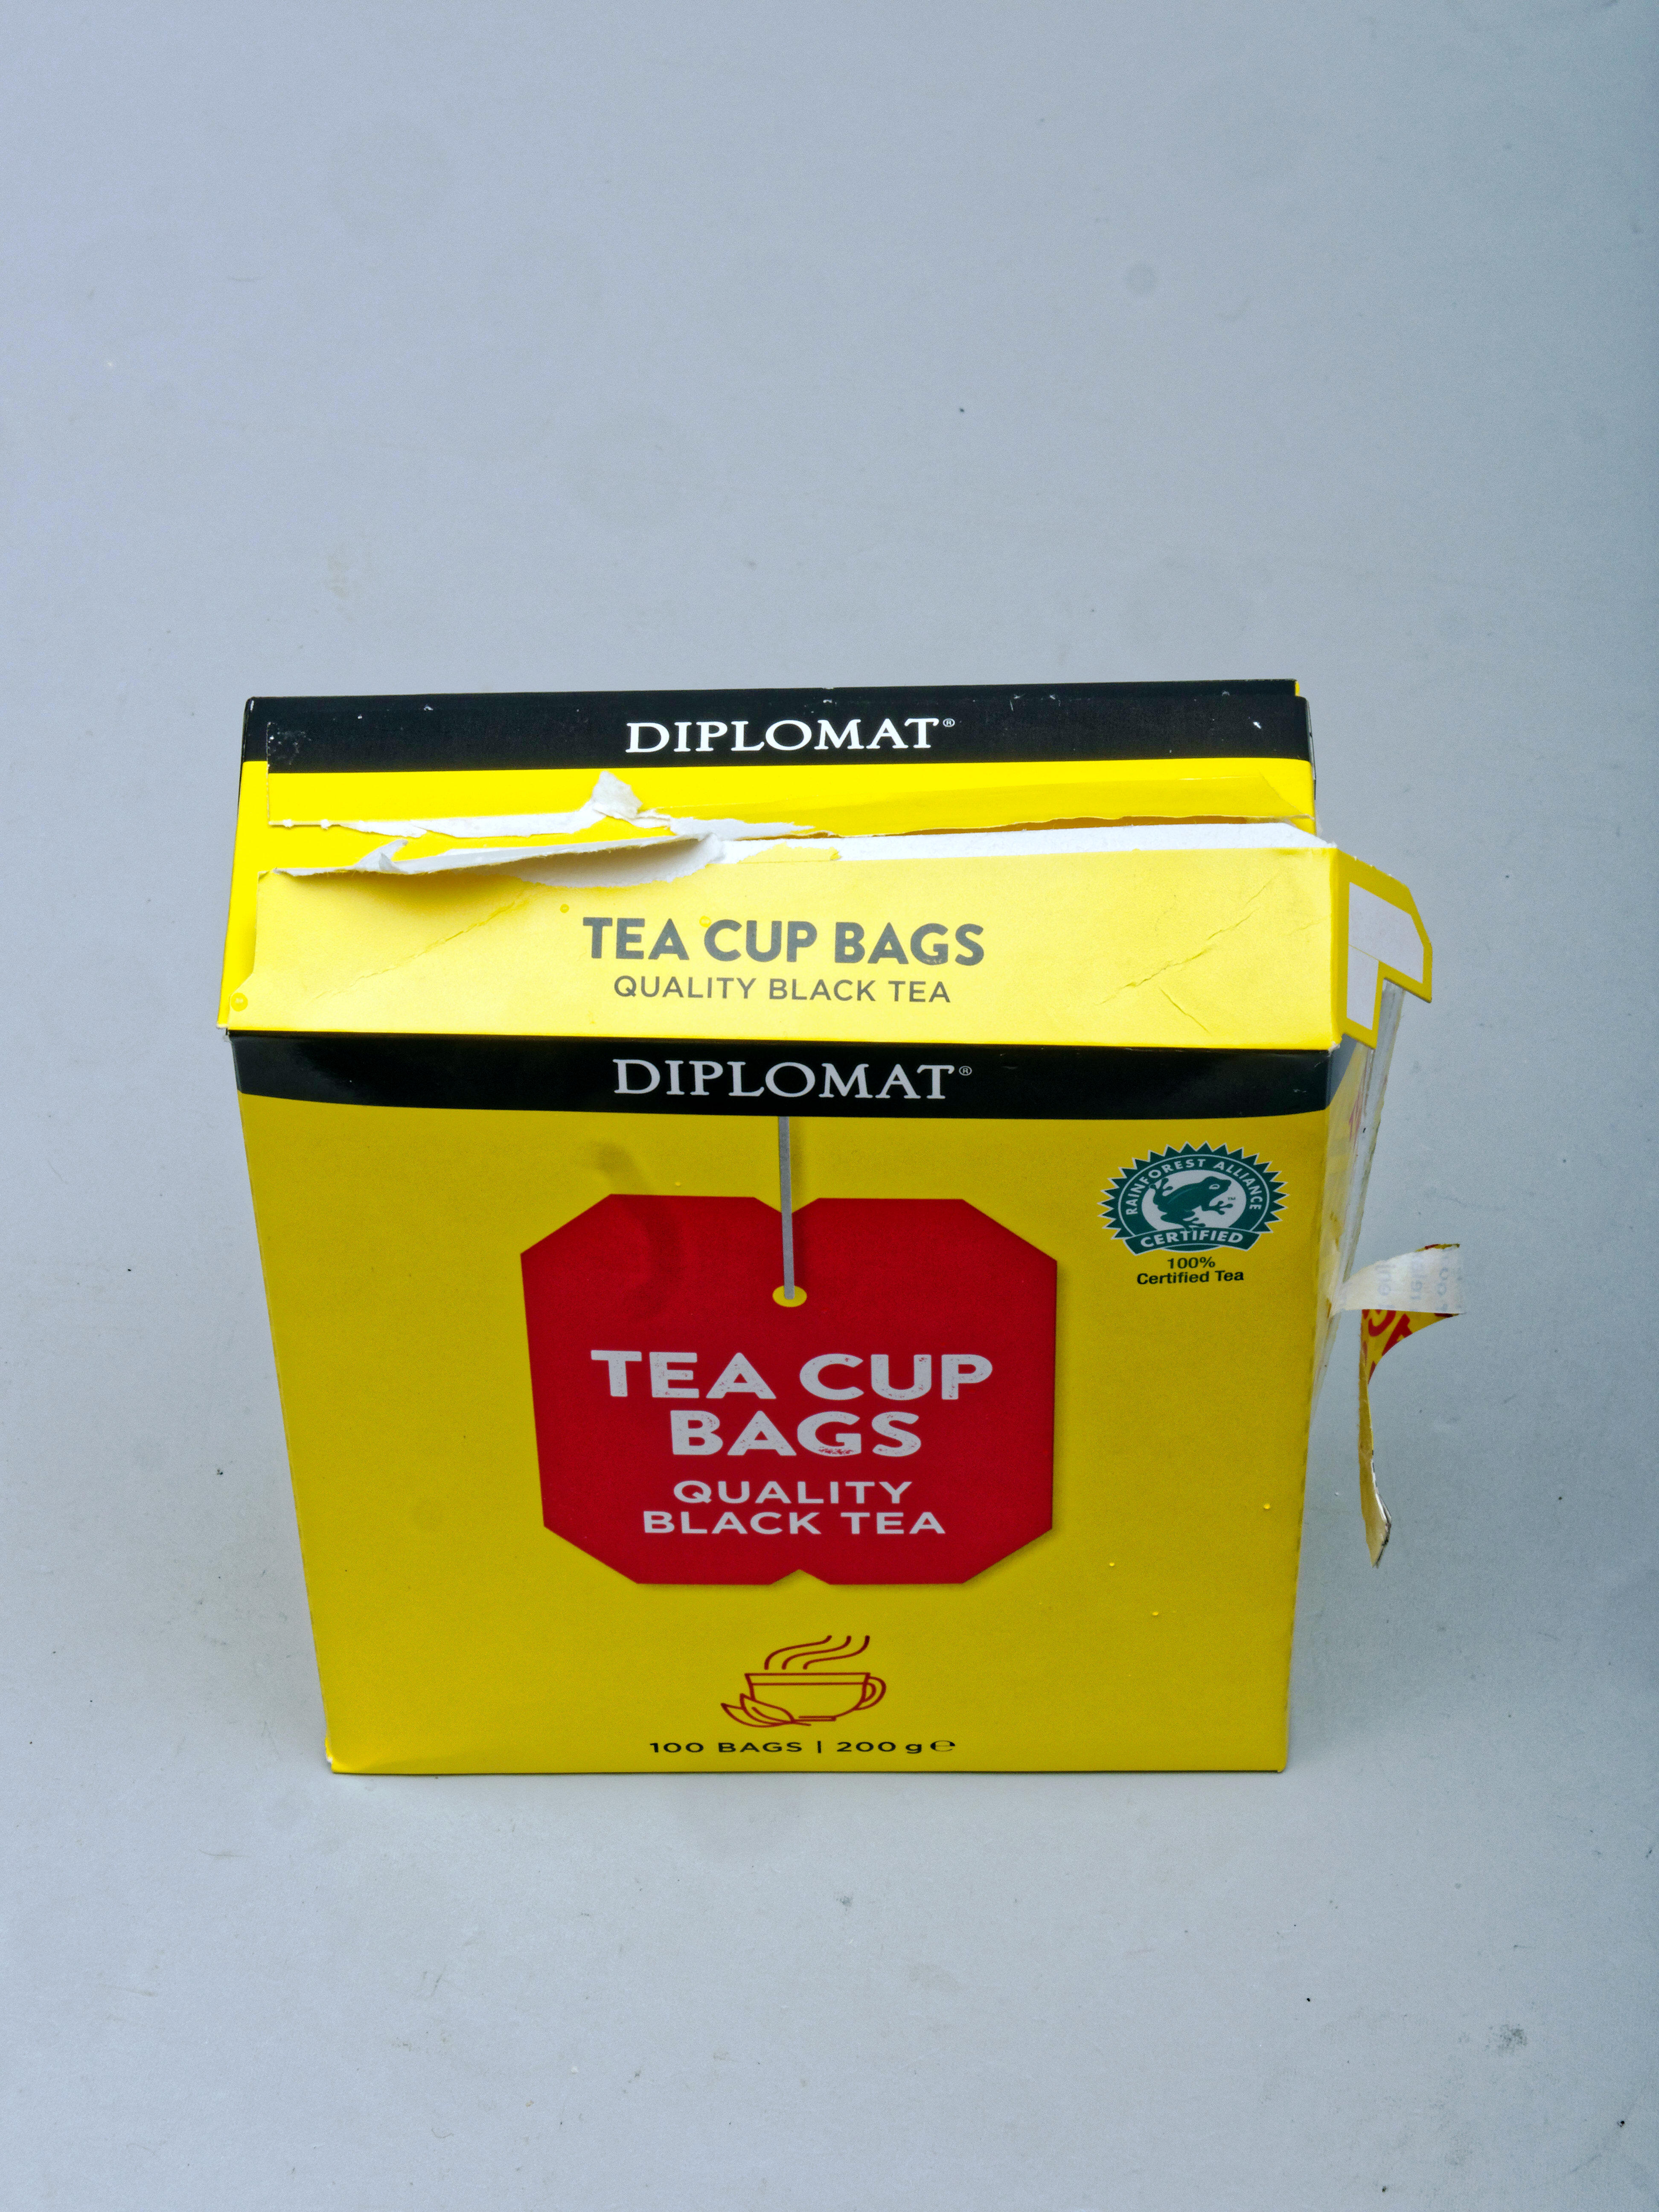 This should be Tea-packaging-1.jpeg.  Is it missing?